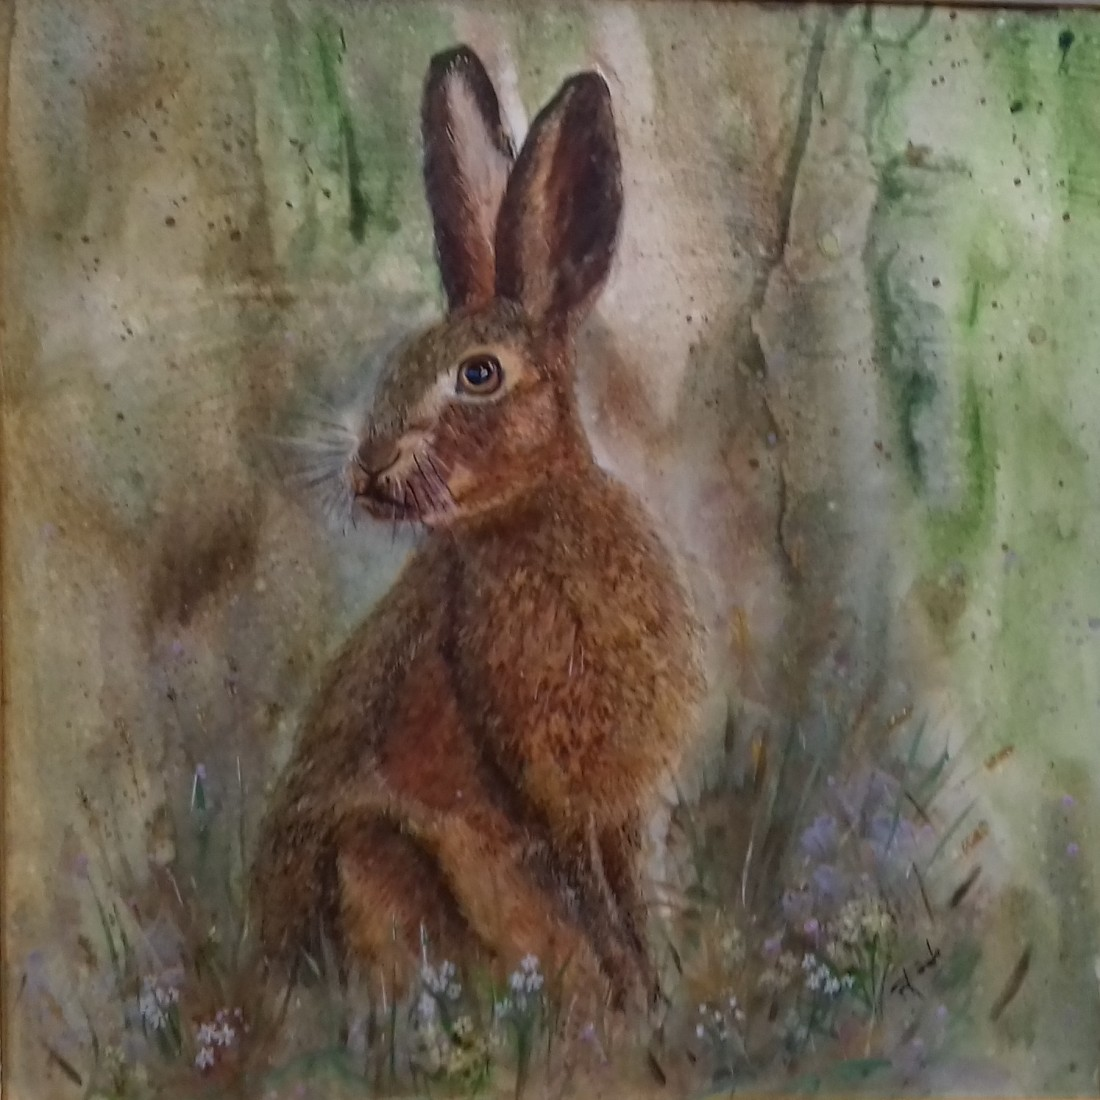 Brown Hare by Rita Poole - The winner!